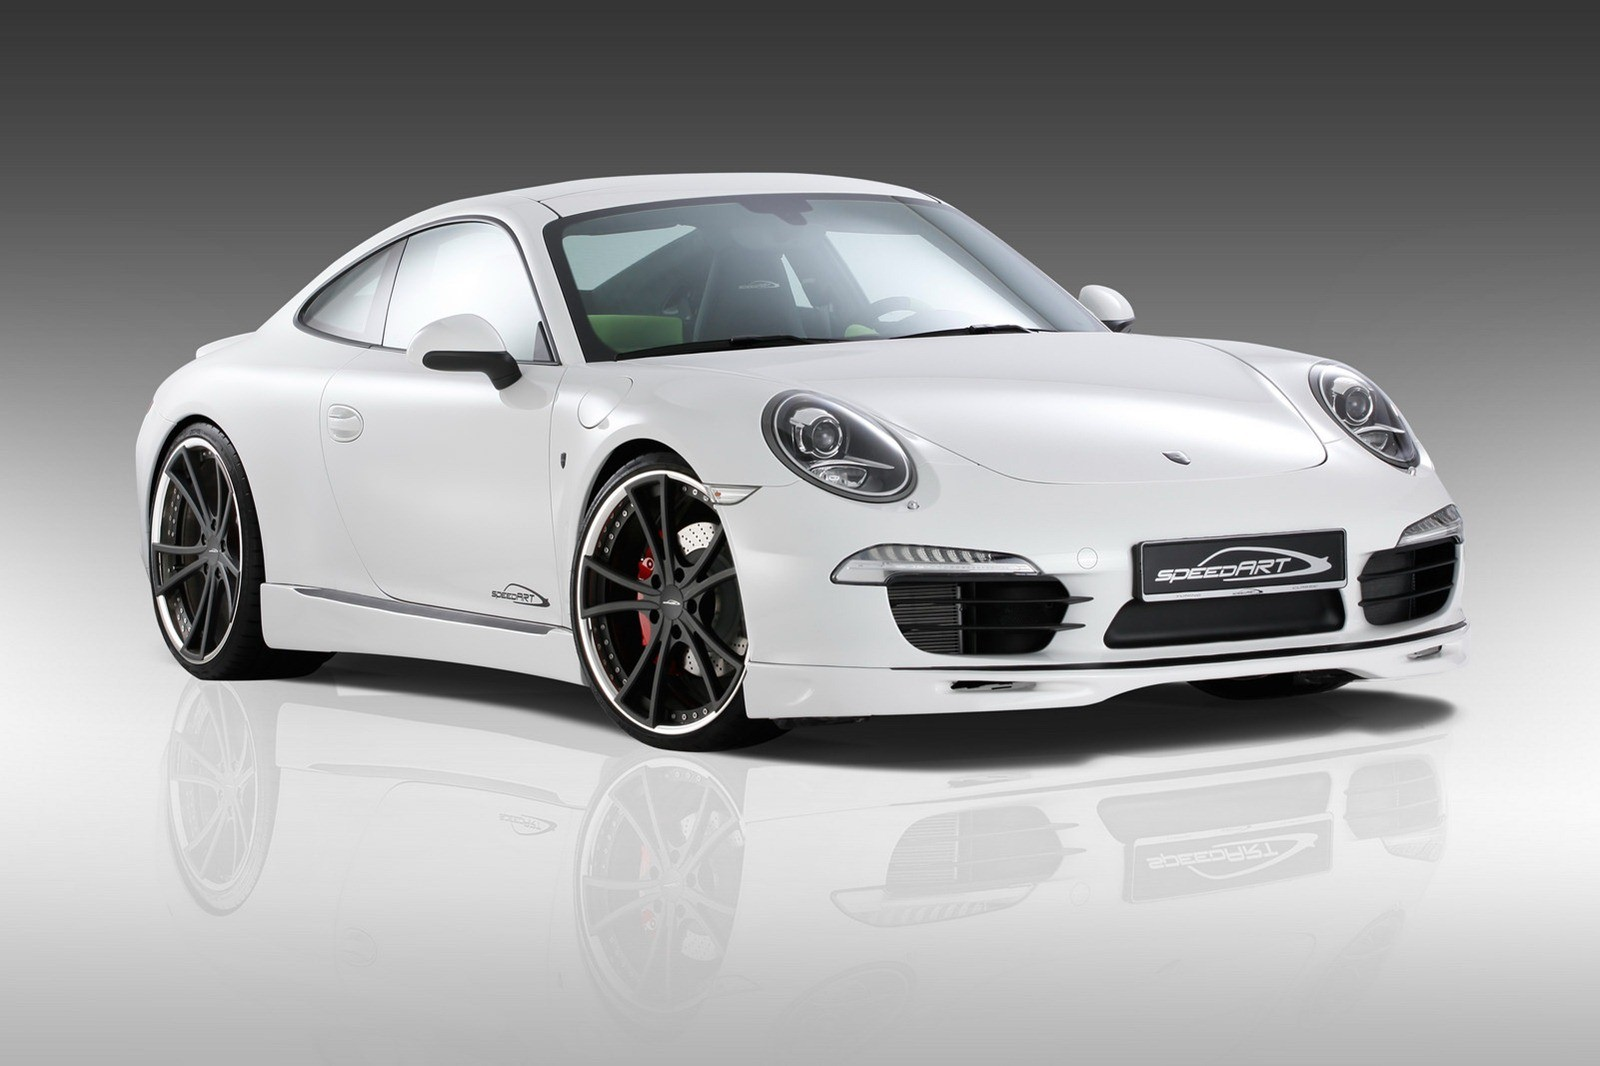 Sport Car Garage Porsche Sp91 R 2012